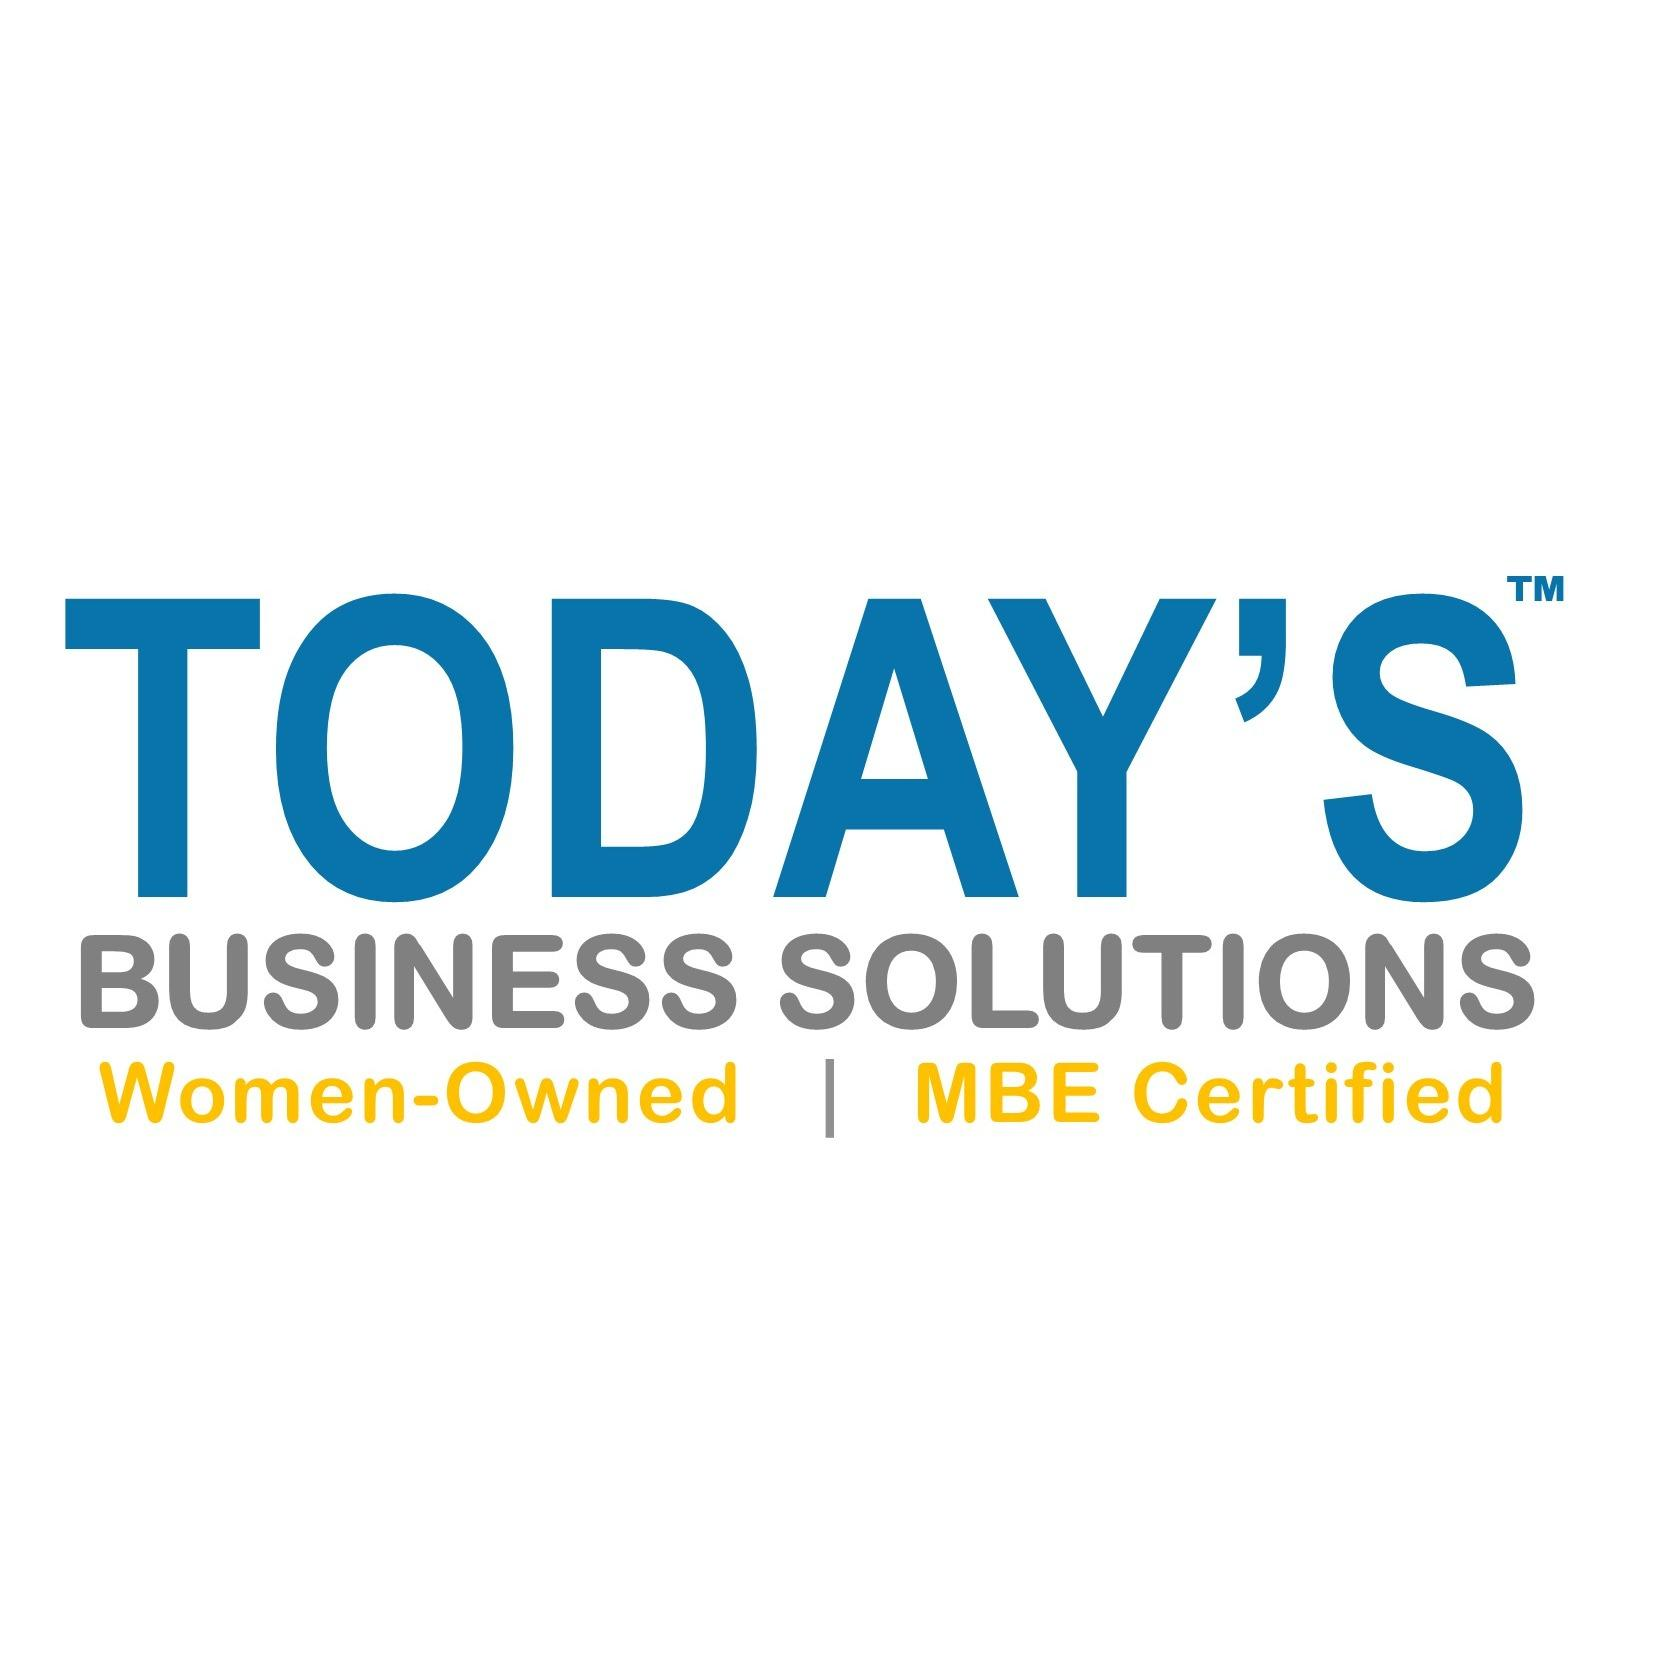 Today's Business Solutions